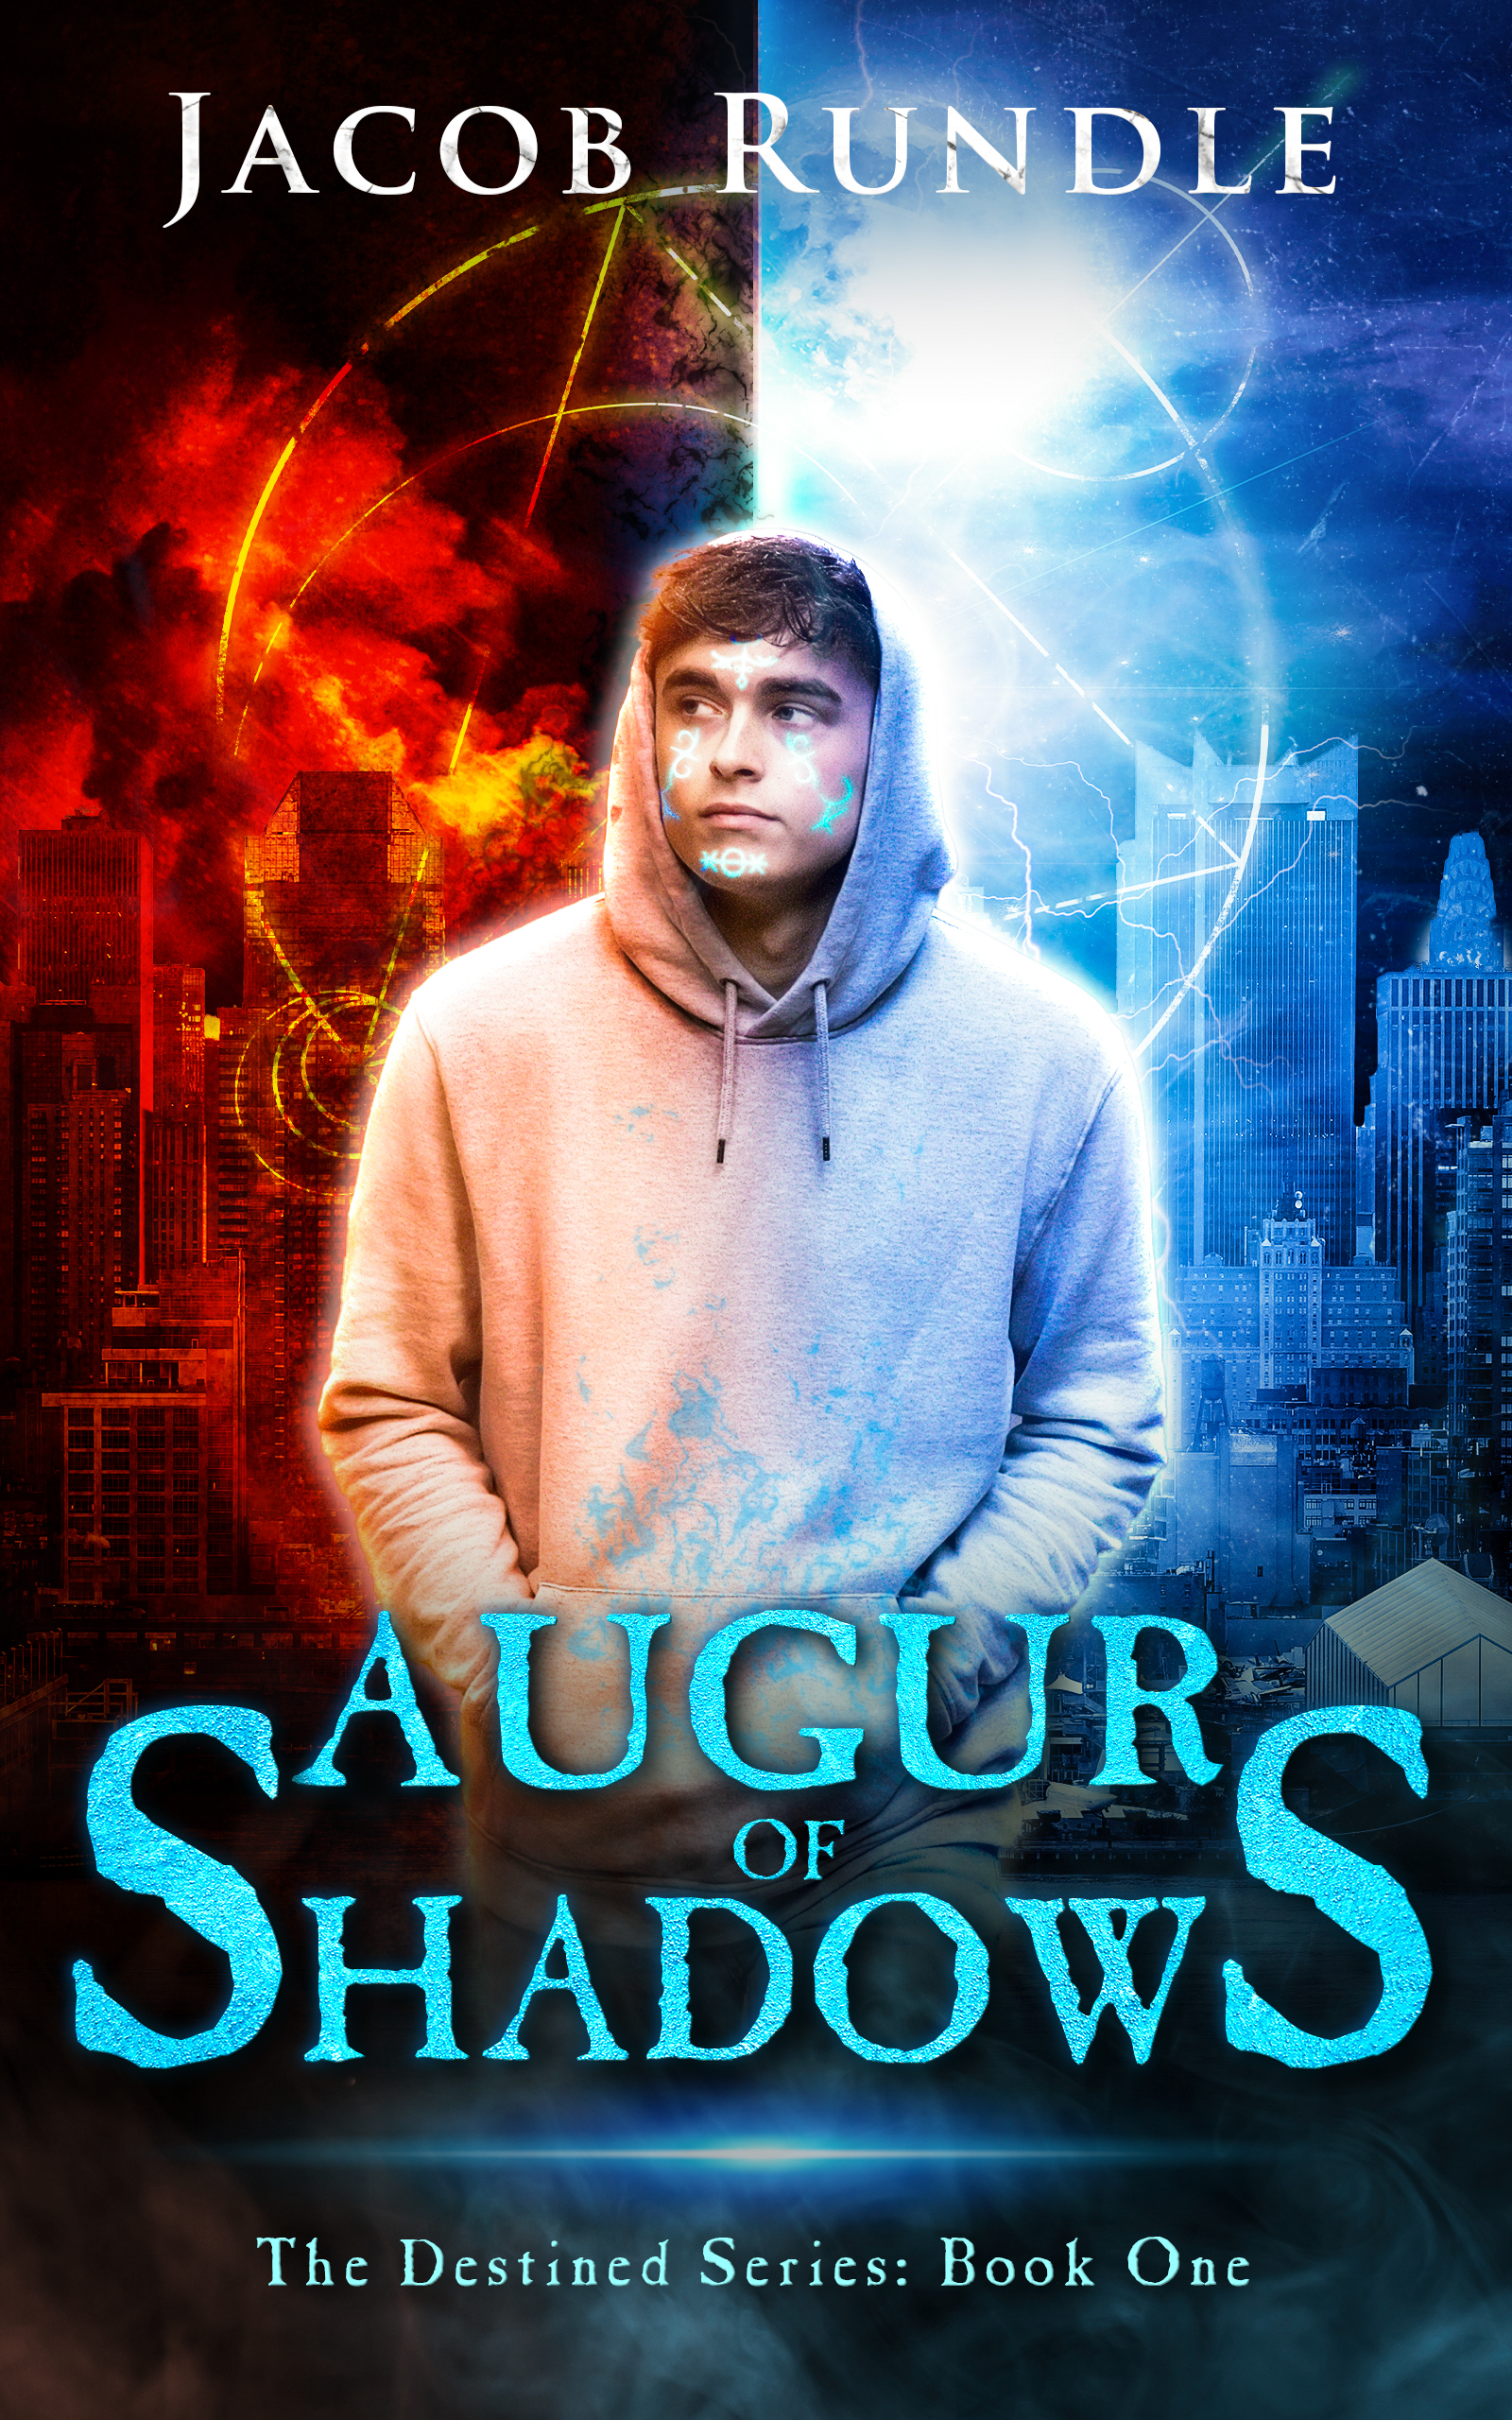 Augur of Shadows - Book 1 of the Destined Series